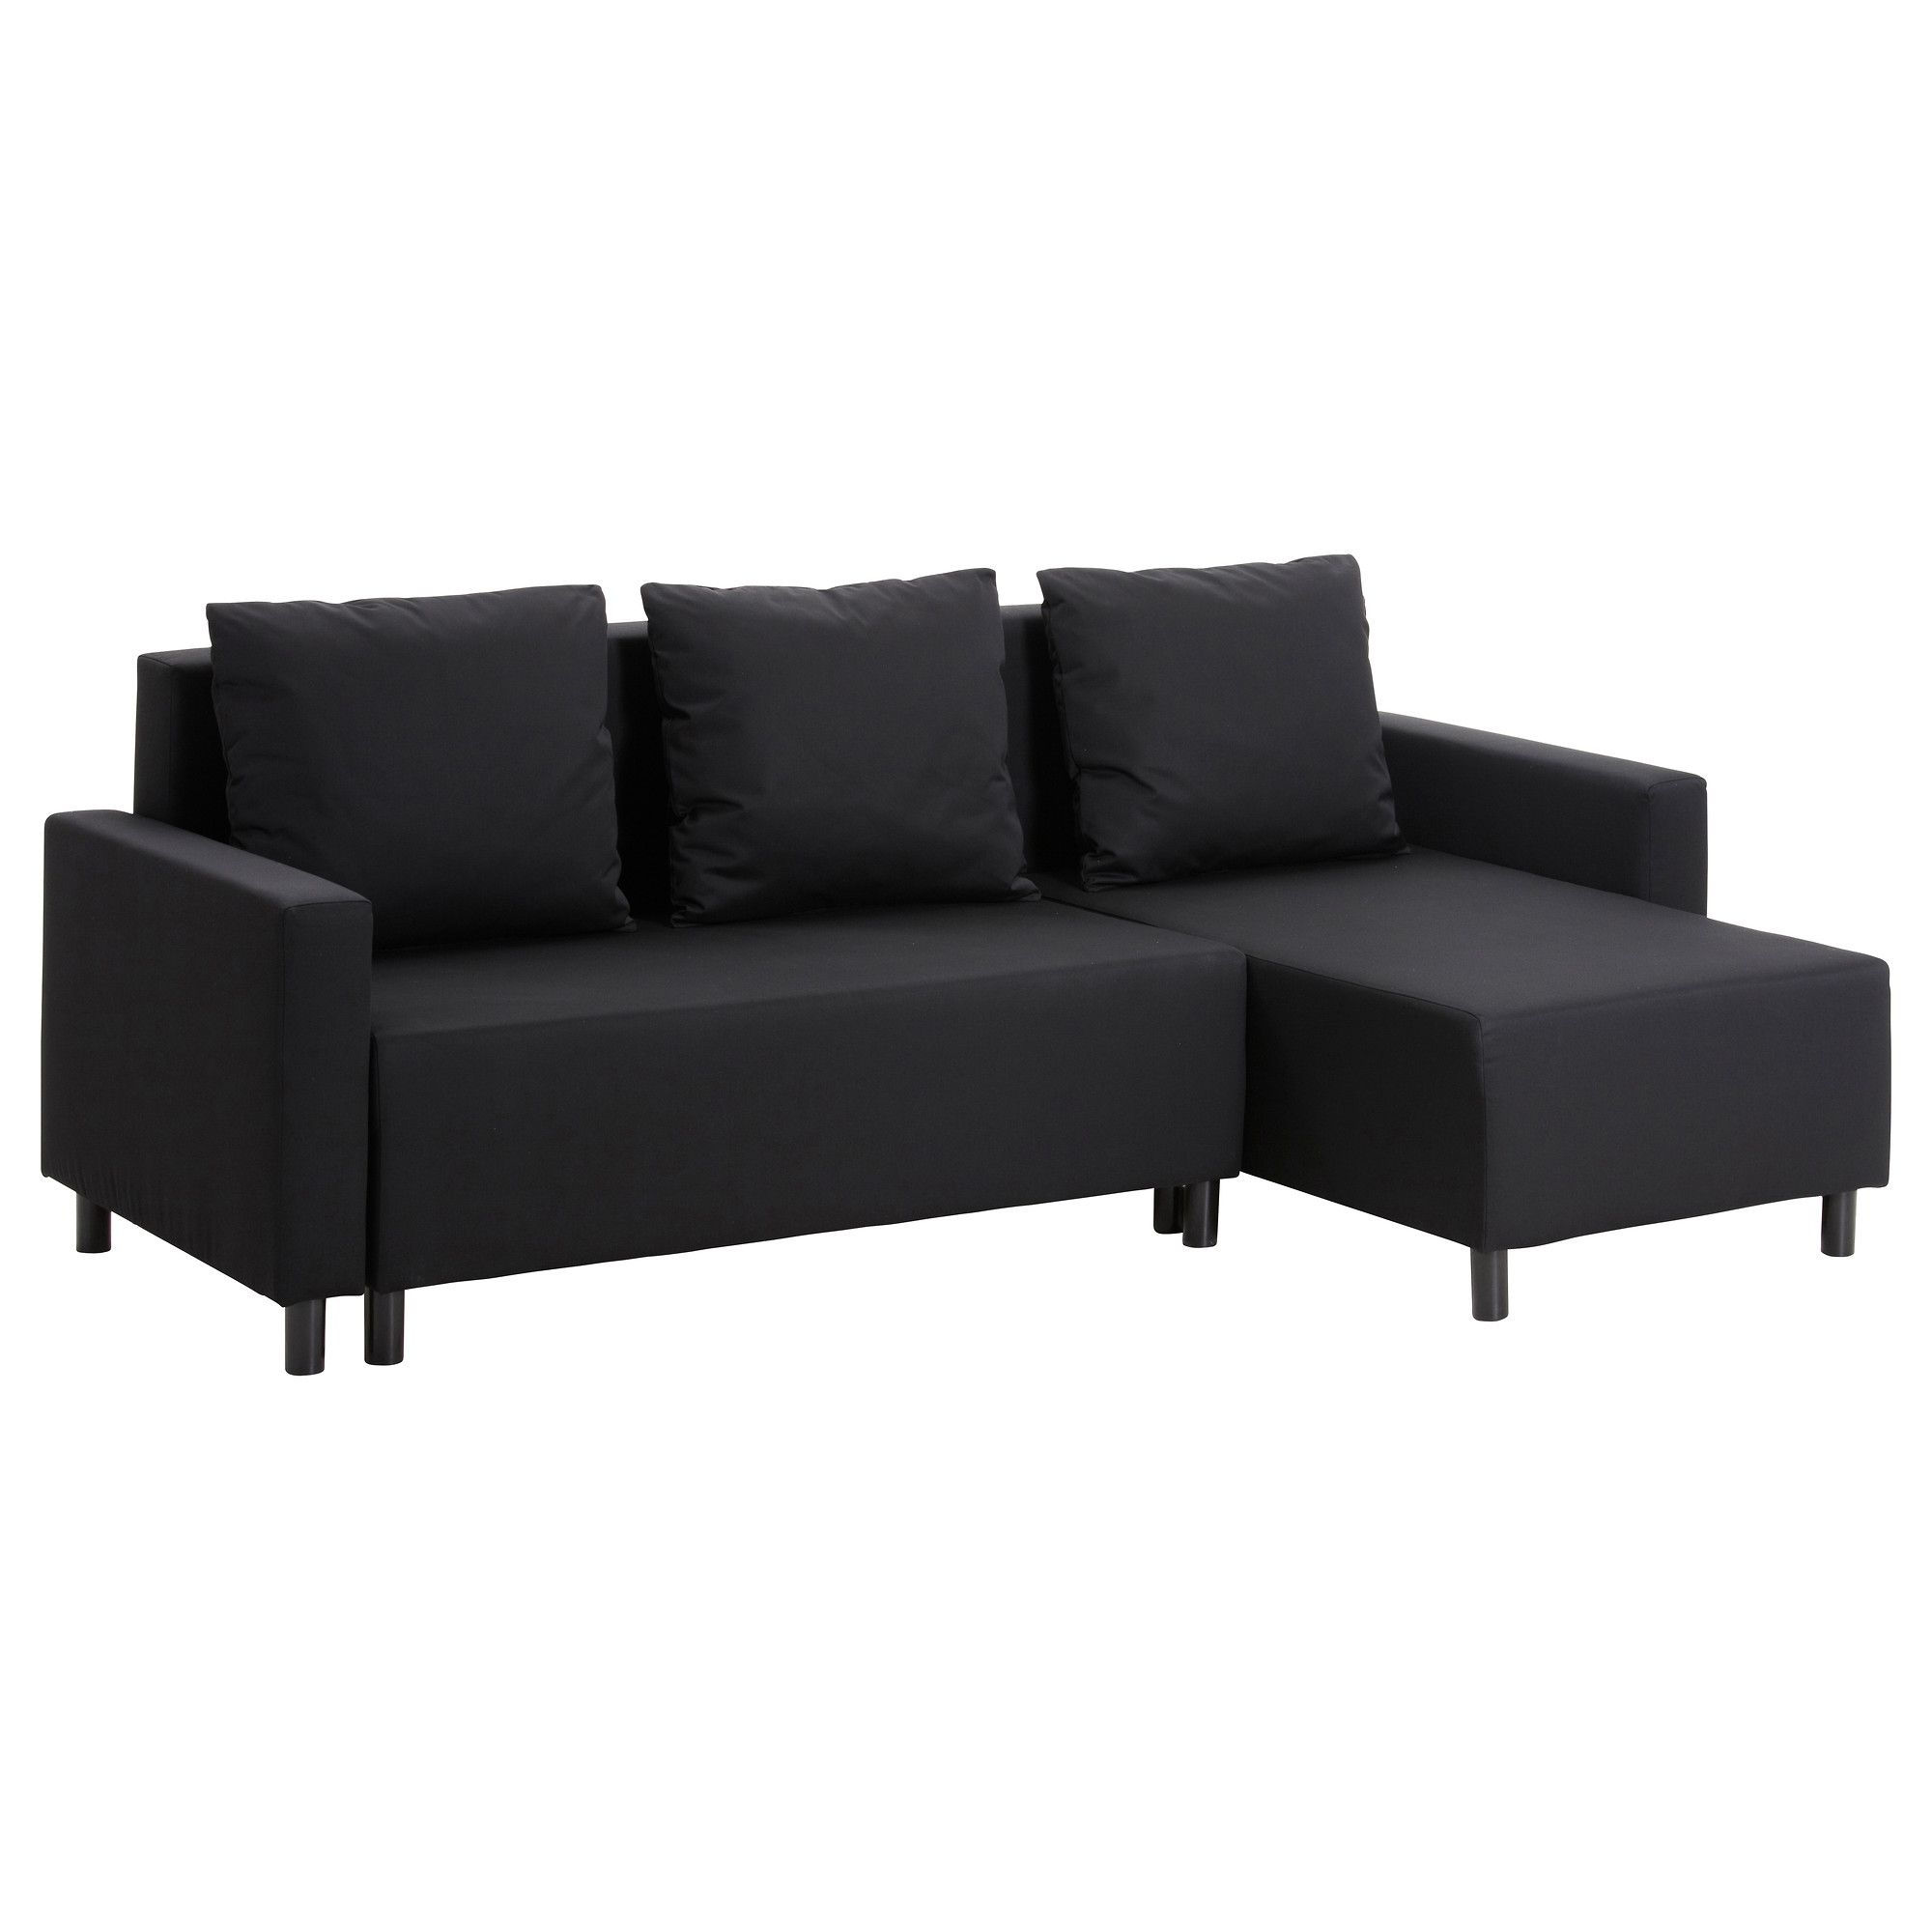 Lugnvik Sofa Bed With Chaise Lounge – Granån Black – Ikea Throughout Recent Ikea Sofa Beds With Chaise (View 11 of 15)